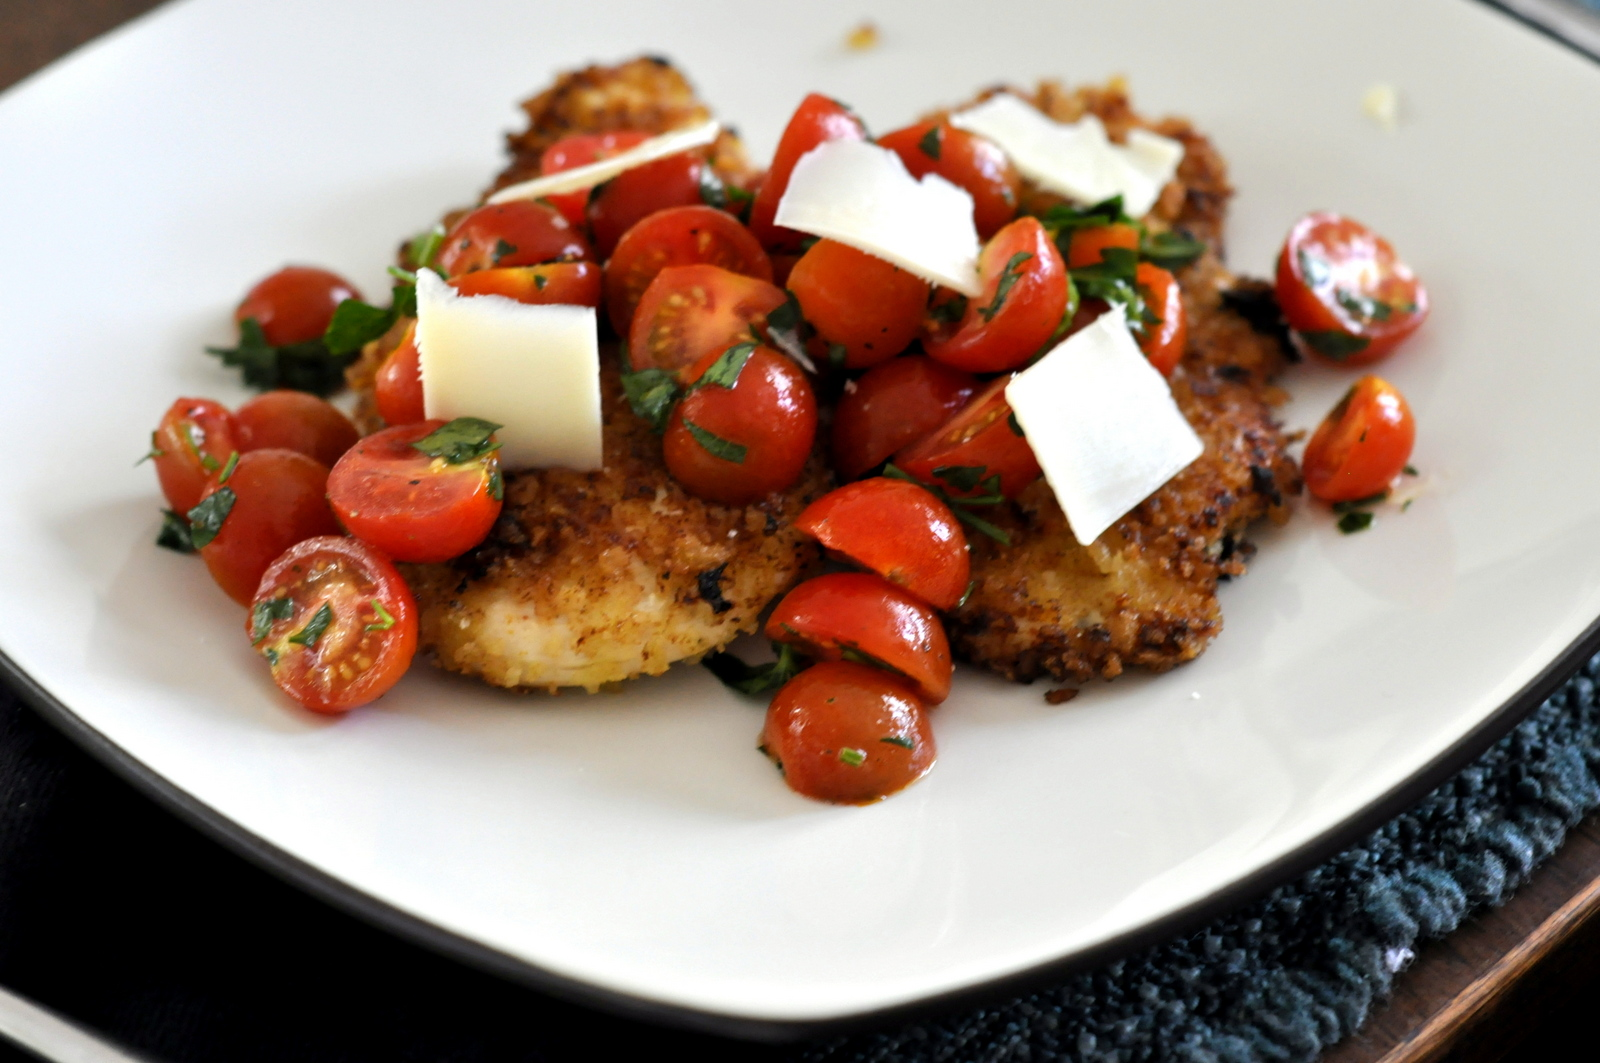 Spicy Chicken Milanese with Tomato Salad and Parmesan | Taste As You Go